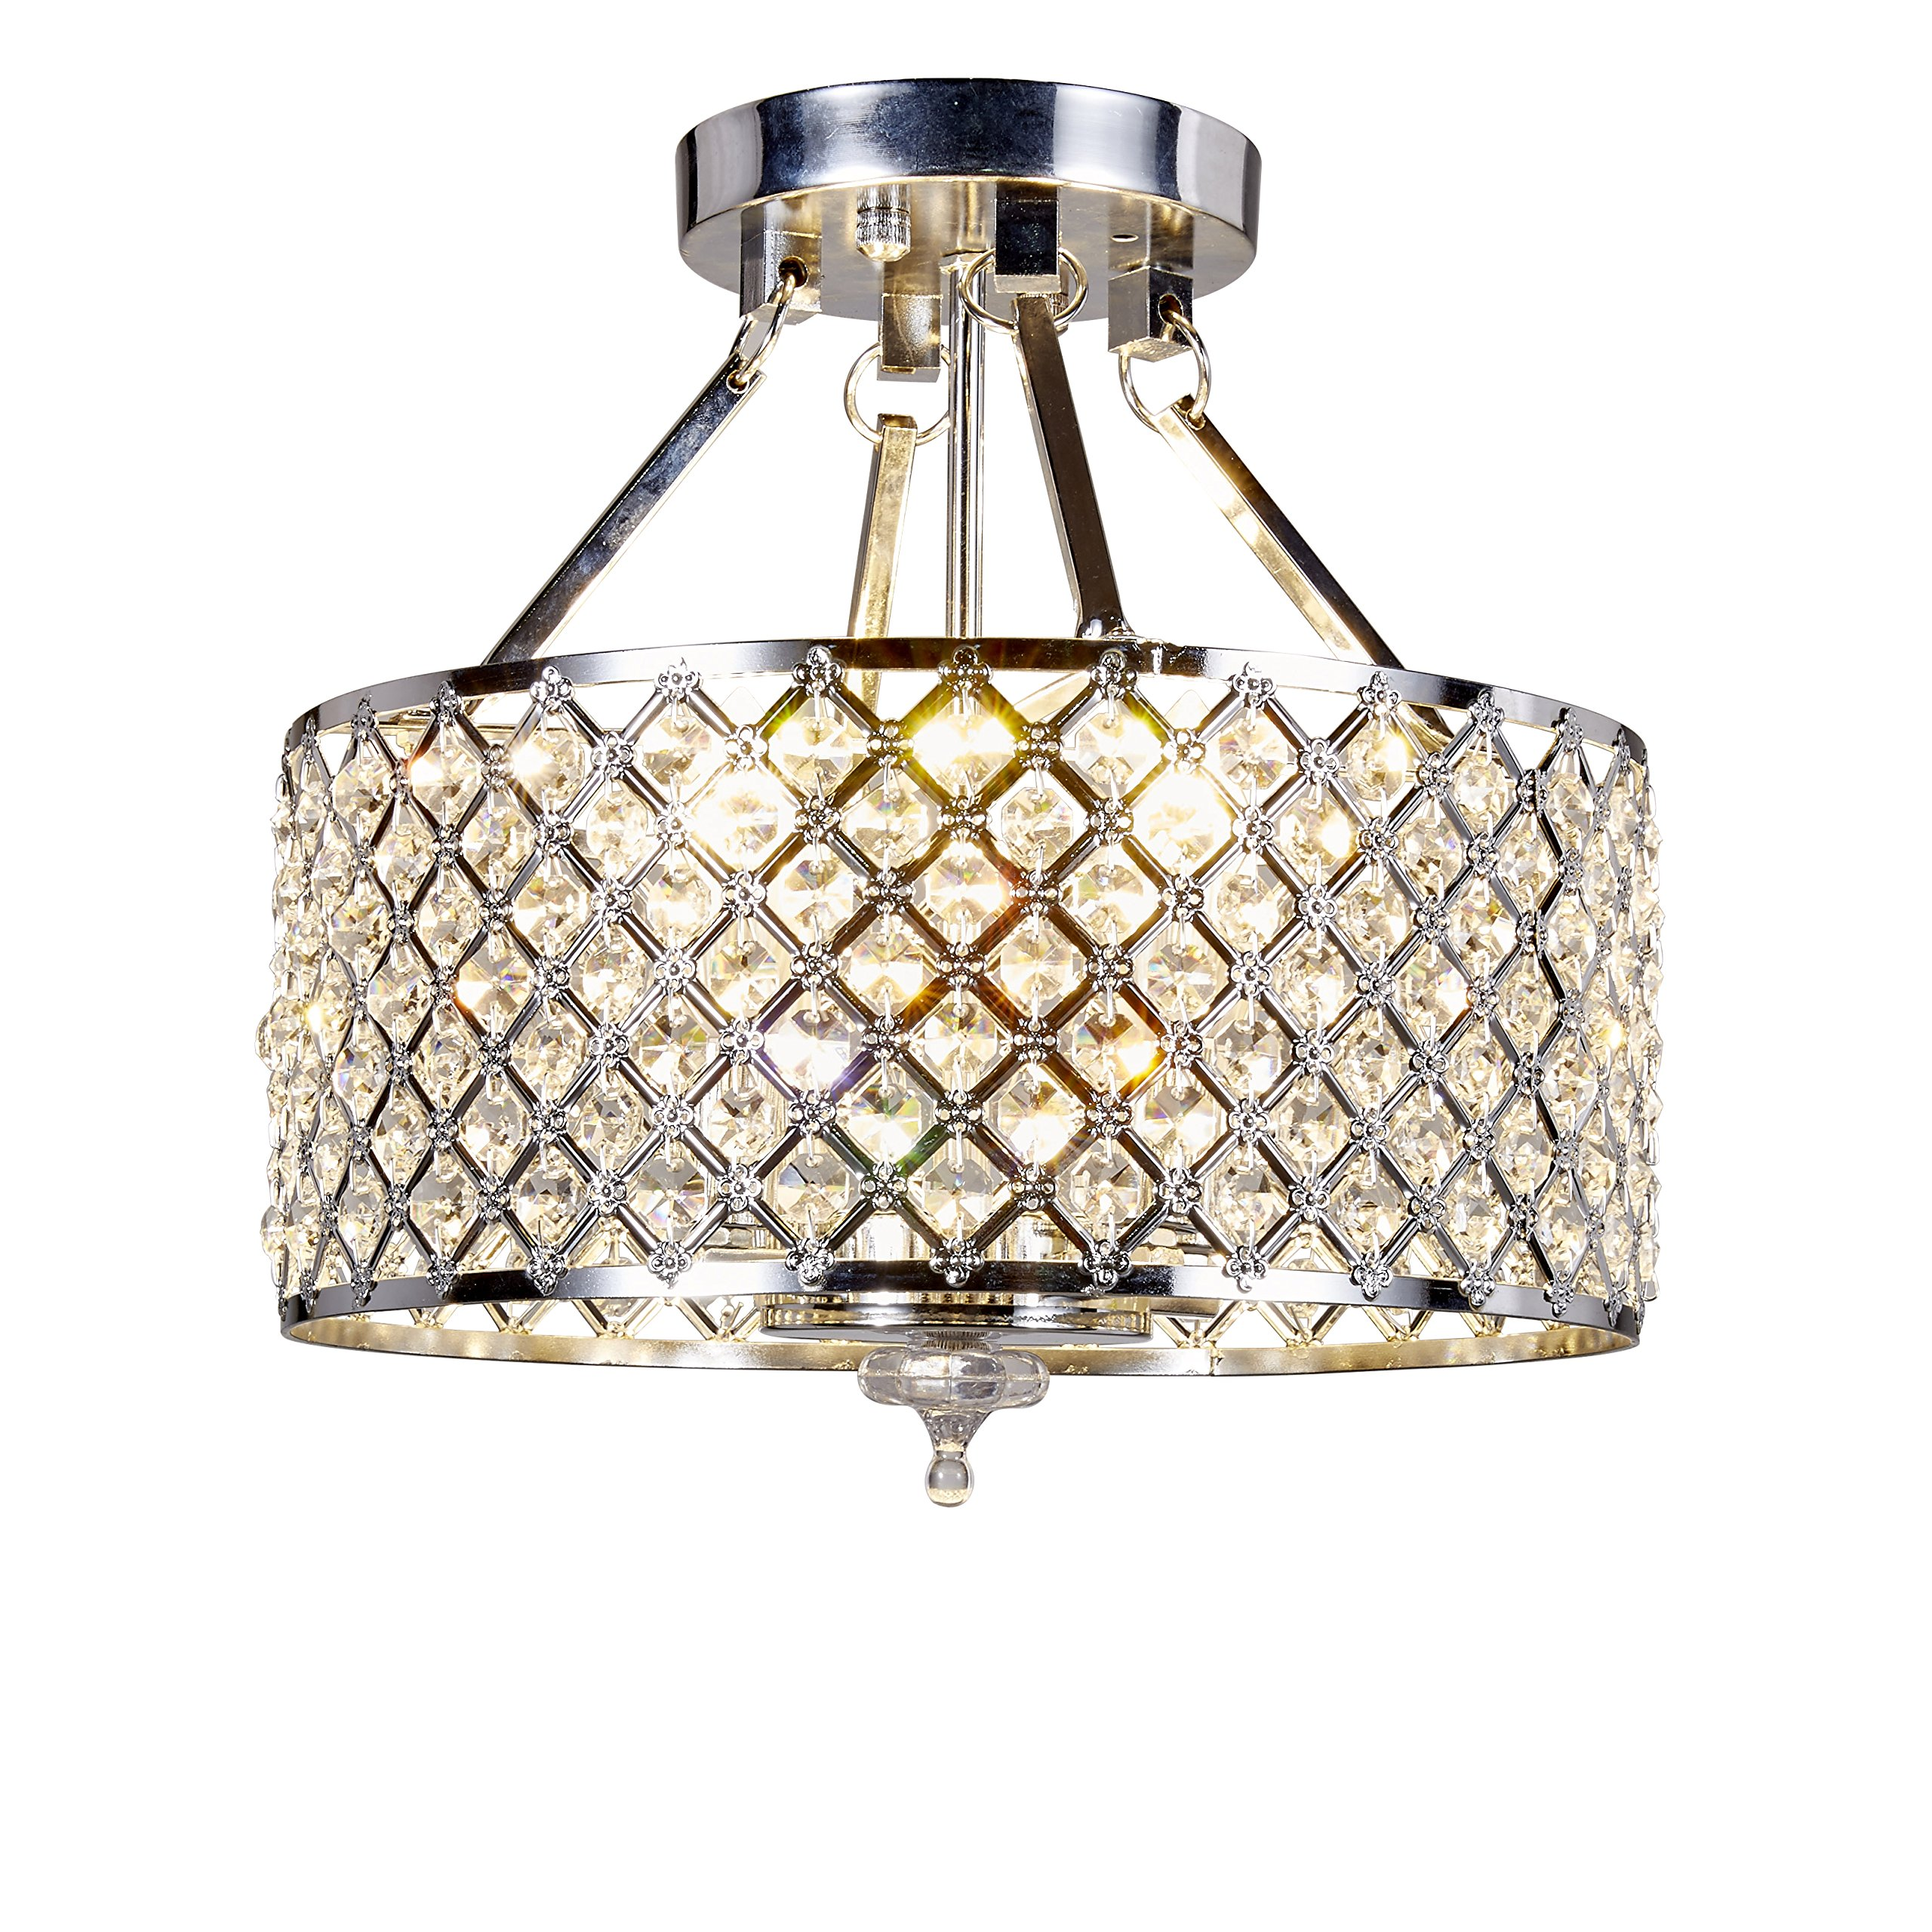 New Galaxy 4-light Chrome Finish Round Metal Shade Crystal Chandelier Semi-Flush Mount Ceiling Fixture by New Galaxy